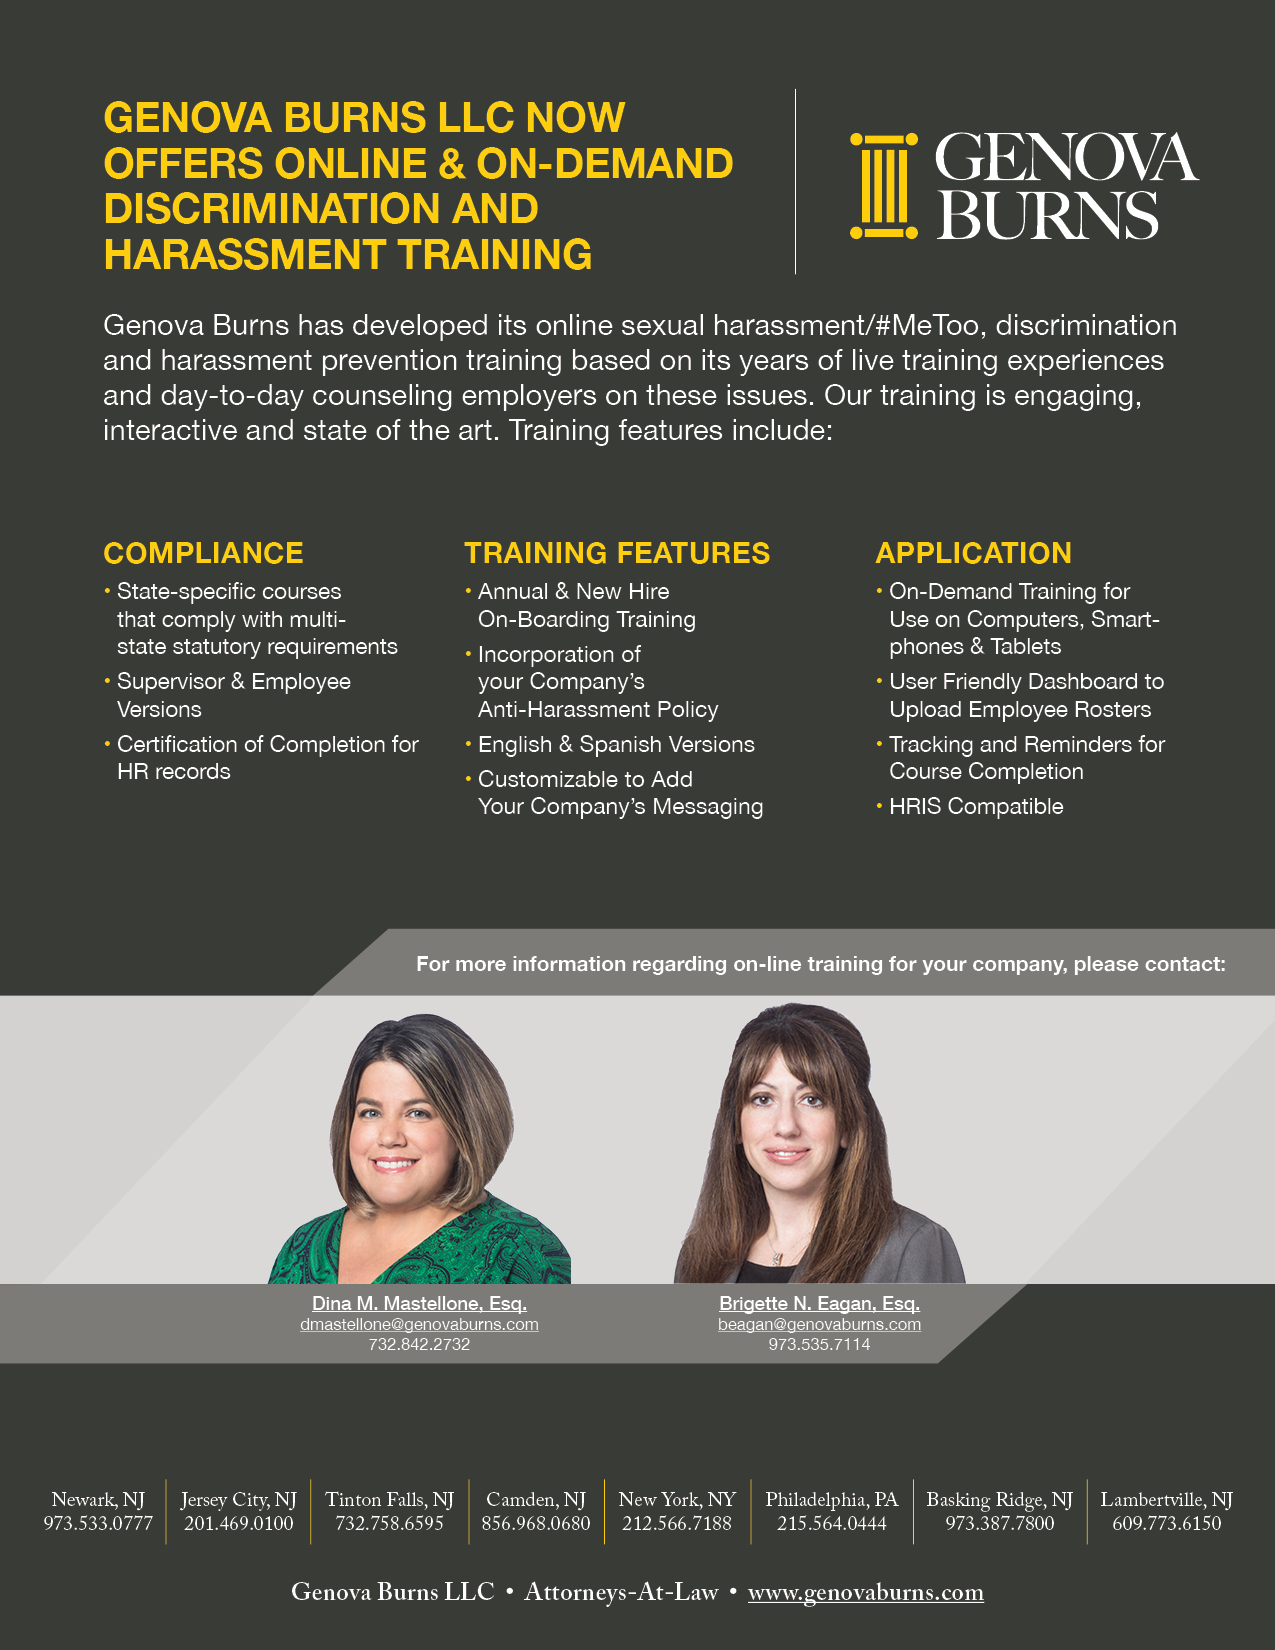 Genova Burns Now Offers On-Line & On-Demand Discrimination and Harassment Training